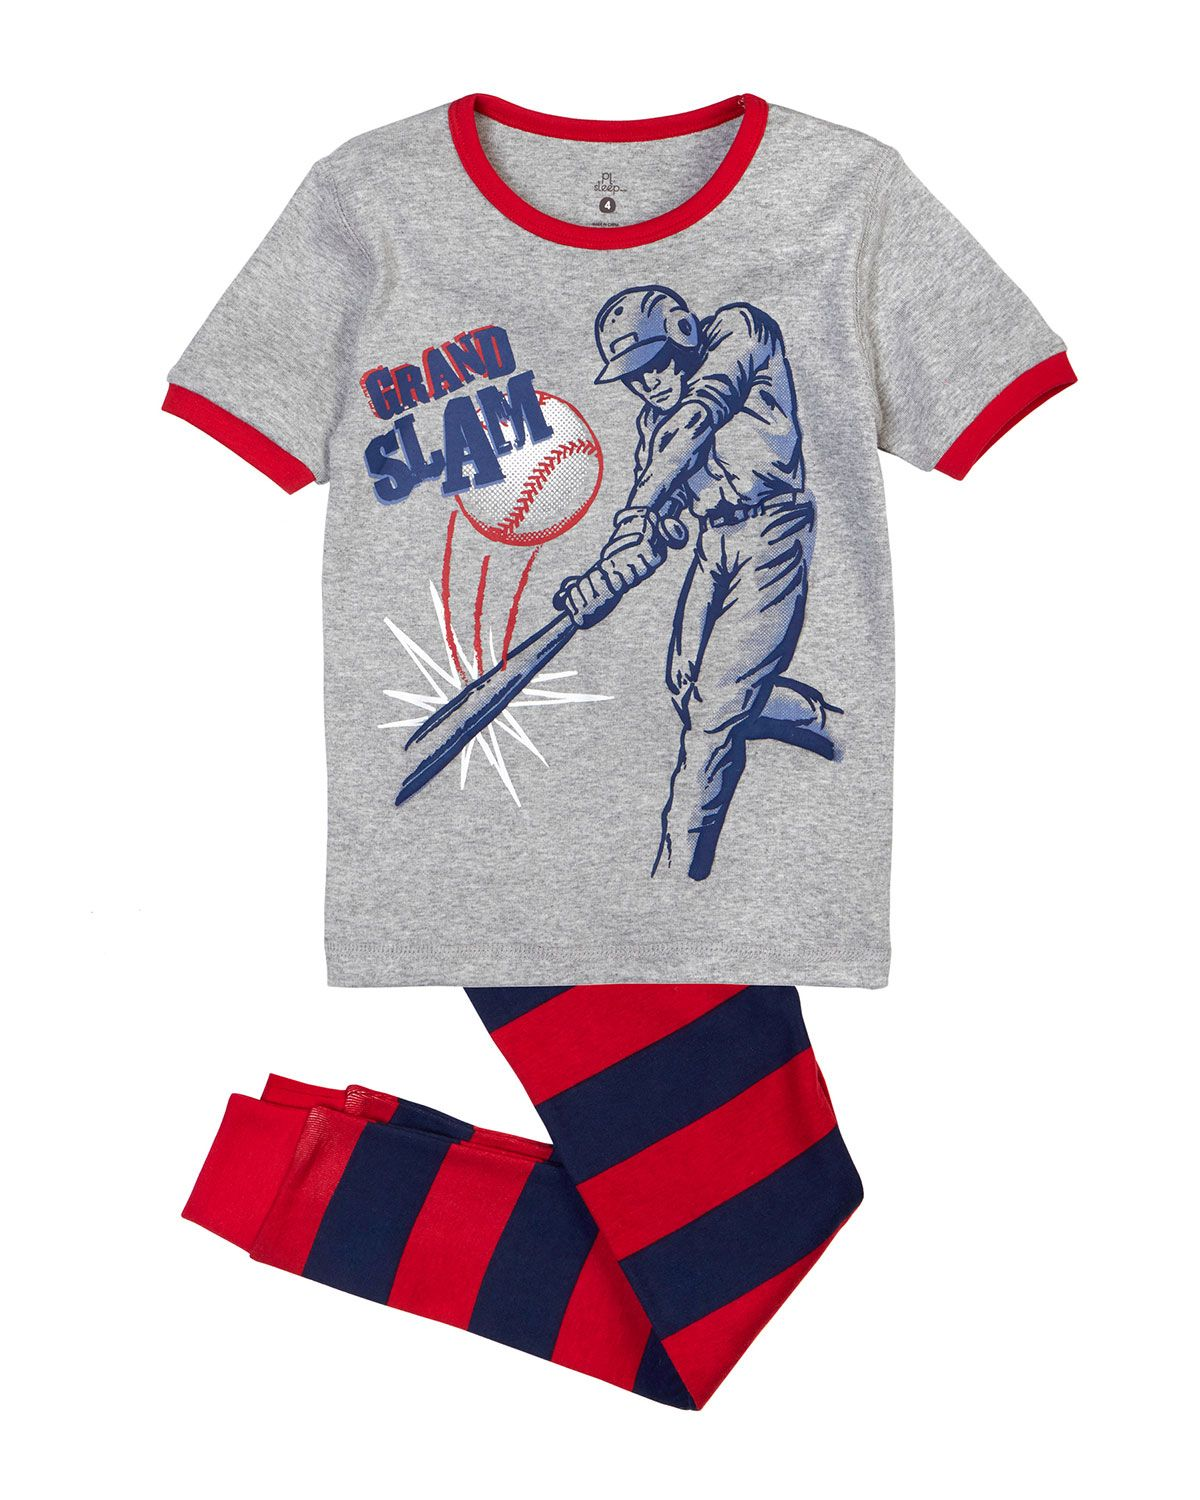 petit lem home run graphic print pajama set gray red navy size  petit lem home run graphic print pajama set gray red navy size boy s size 14